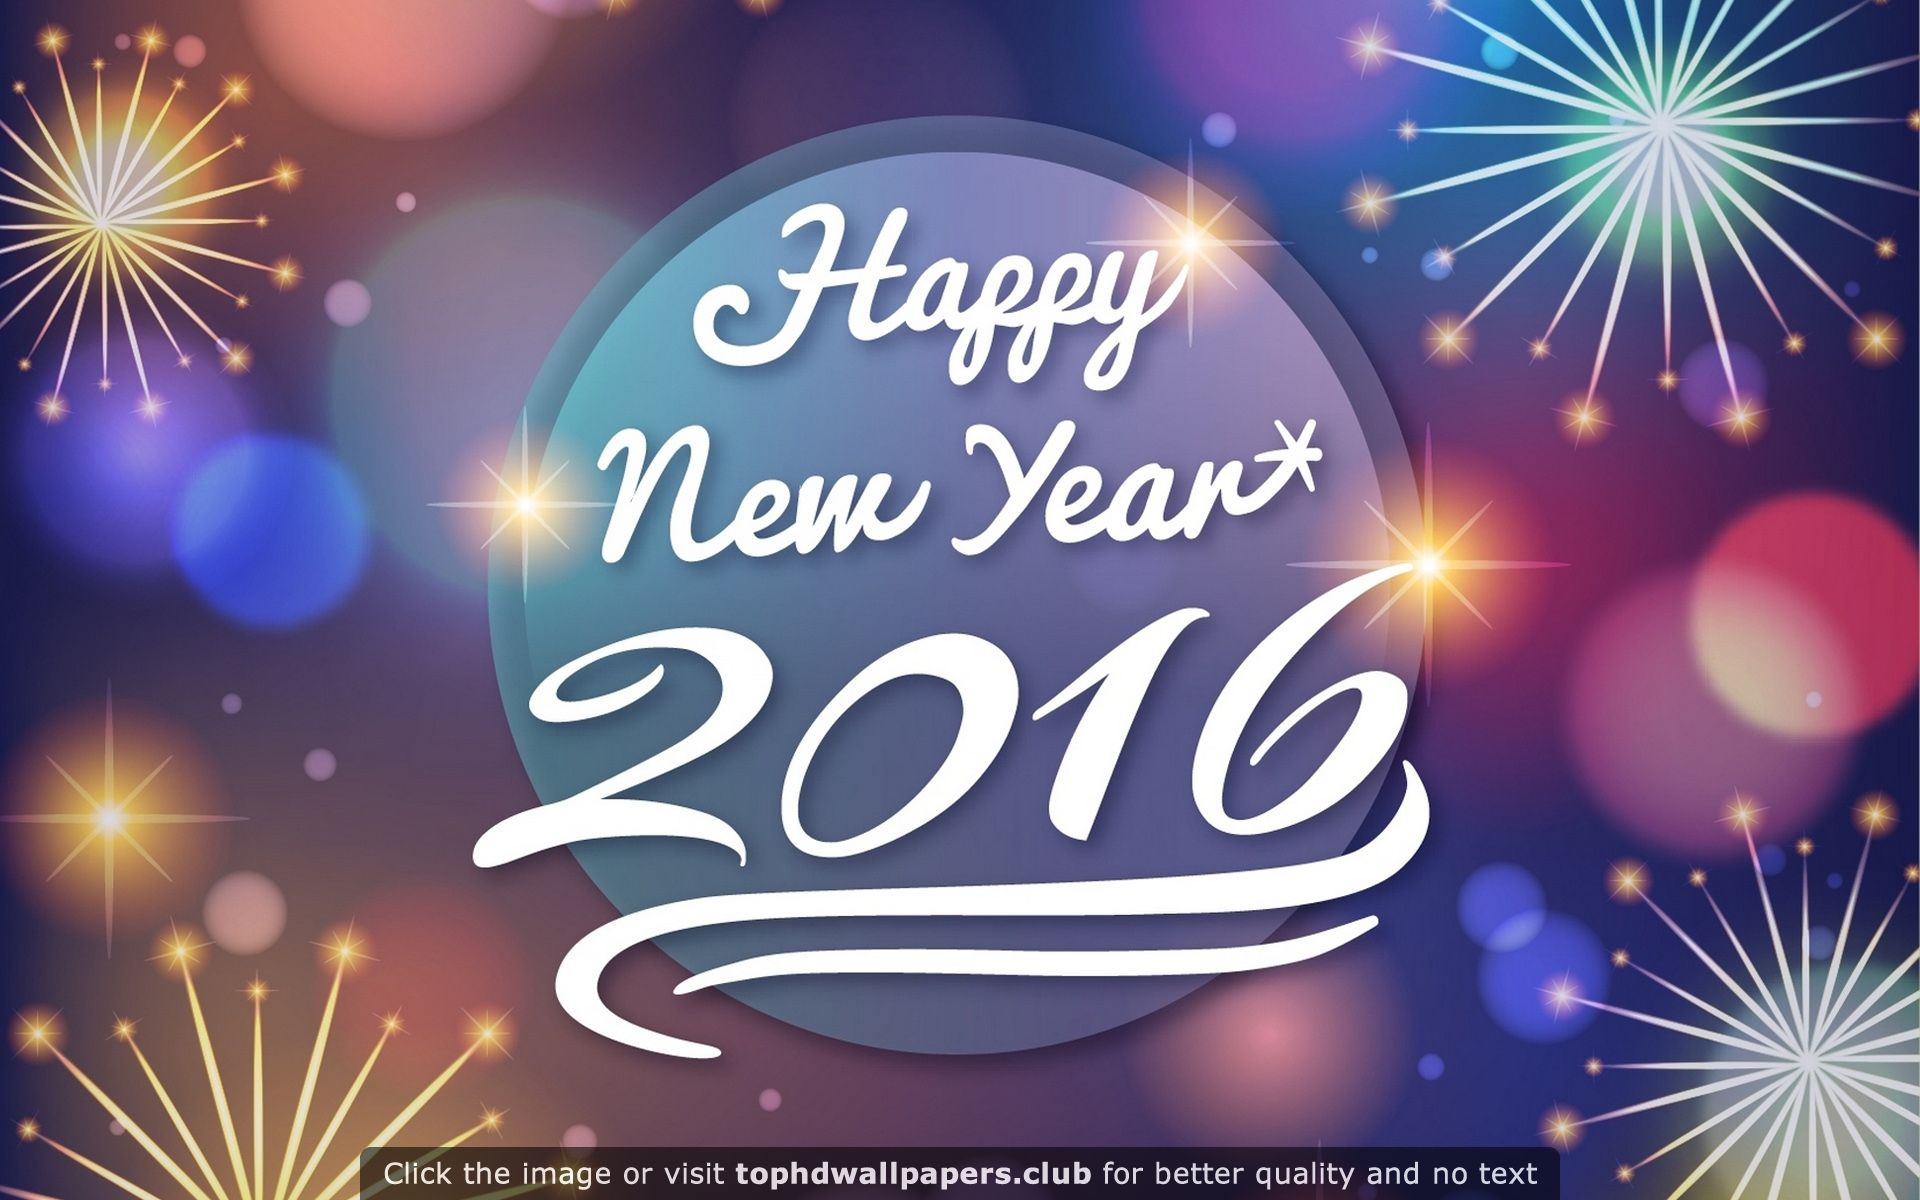 Happy New Year 2016 Hd Wallpaper For Your Pc Mac Or Mobile Device